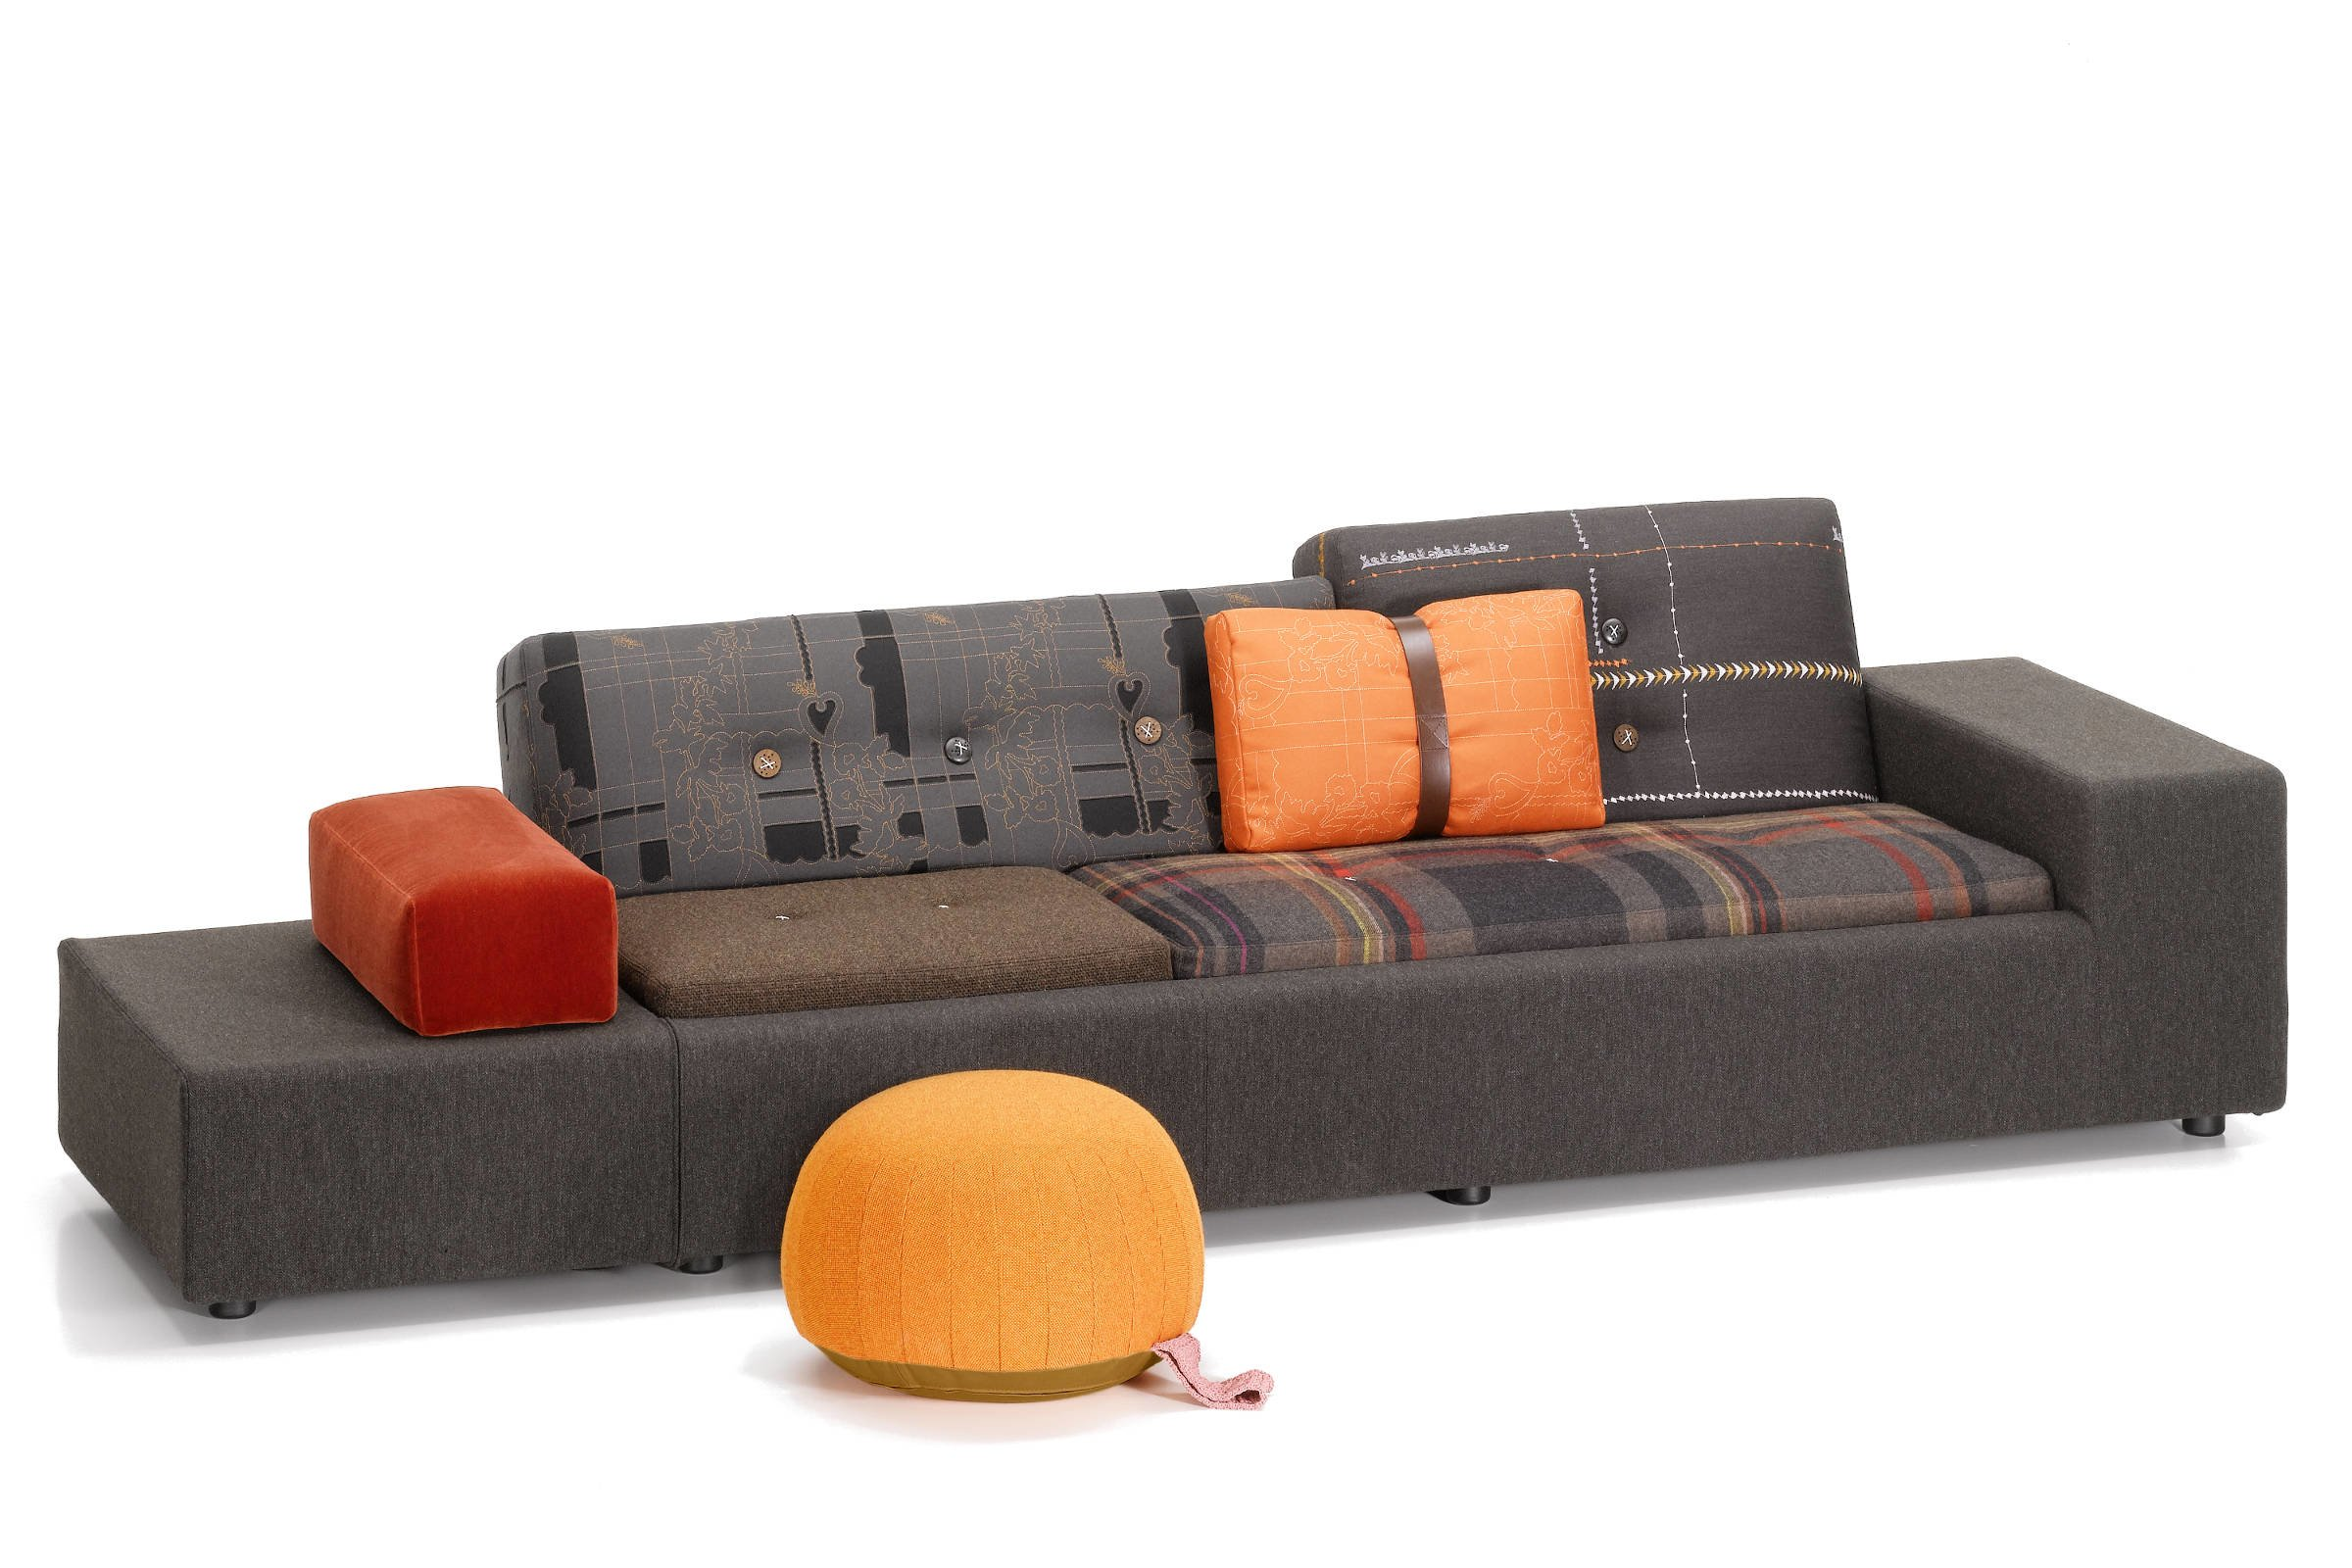 vitra polder sofa de projectinrichter. Black Bedroom Furniture Sets. Home Design Ideas